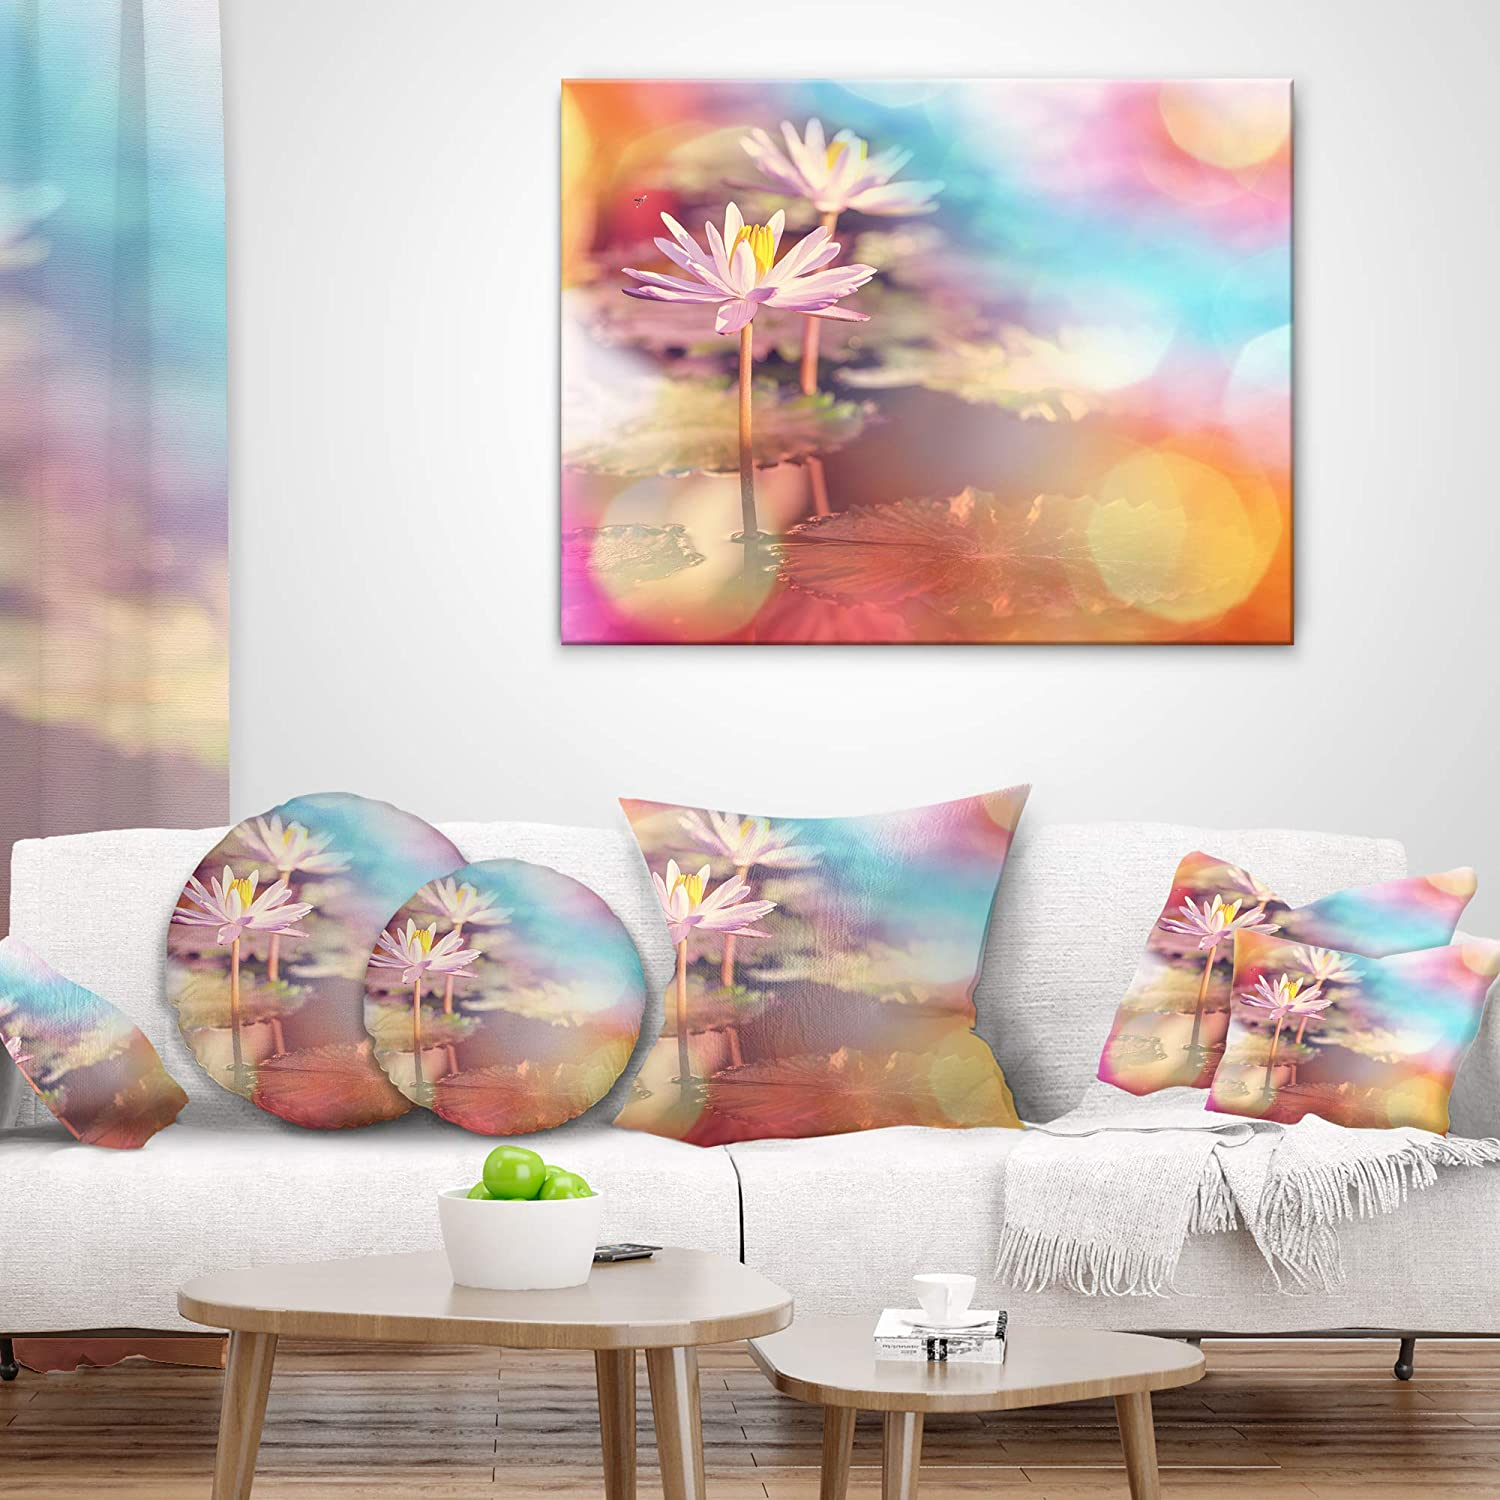 Throw Pillow Designart CU12409-12-20 Lotus on Abstract Background Floral Lumbar Cushion Cover for Living Room 12 x 20, Sofa